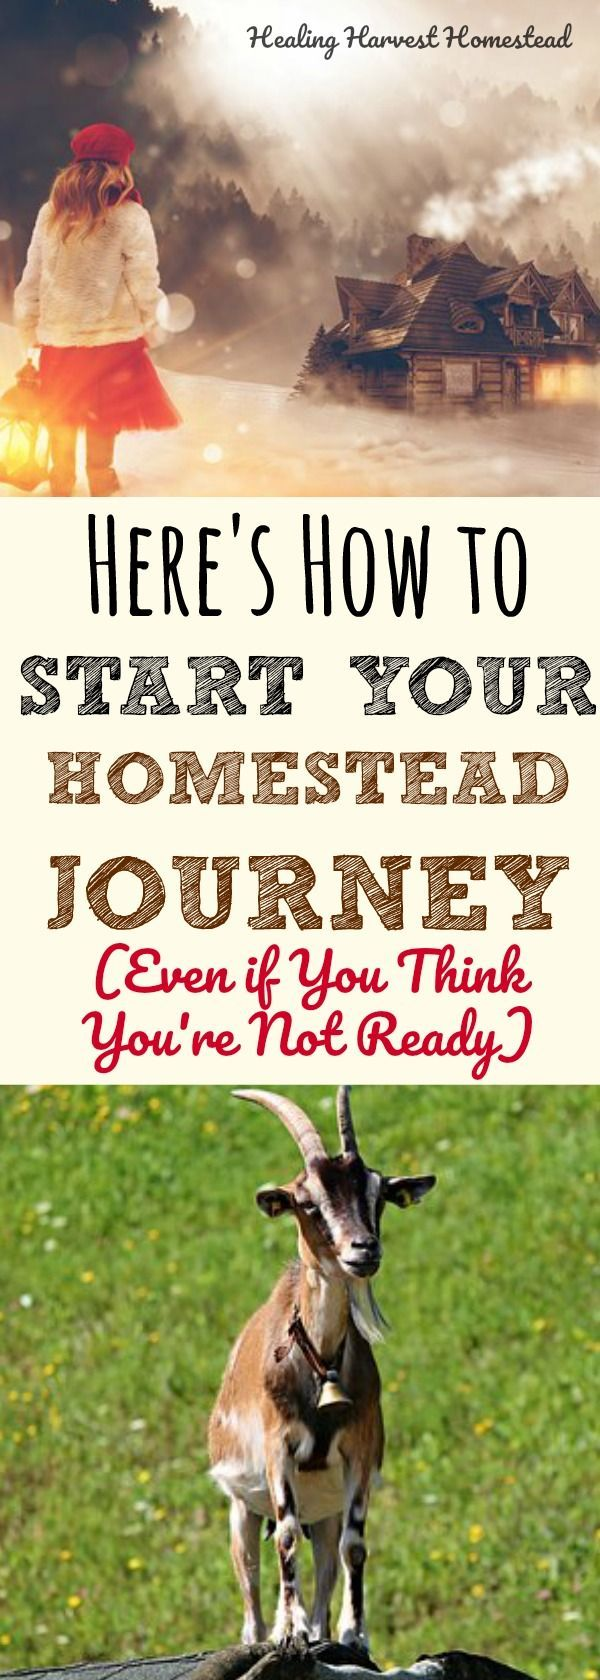 Are you homestead dreaming? Do you want to simplify your life? Do you want to live more traditionally and be more self-sufficient? Here's how we began our own homestead journey a few years ago...And here is how you can start your own homesteading life, no matter where you live! Find out the step-by-steps and directions to get started on your homestead lifestyle.